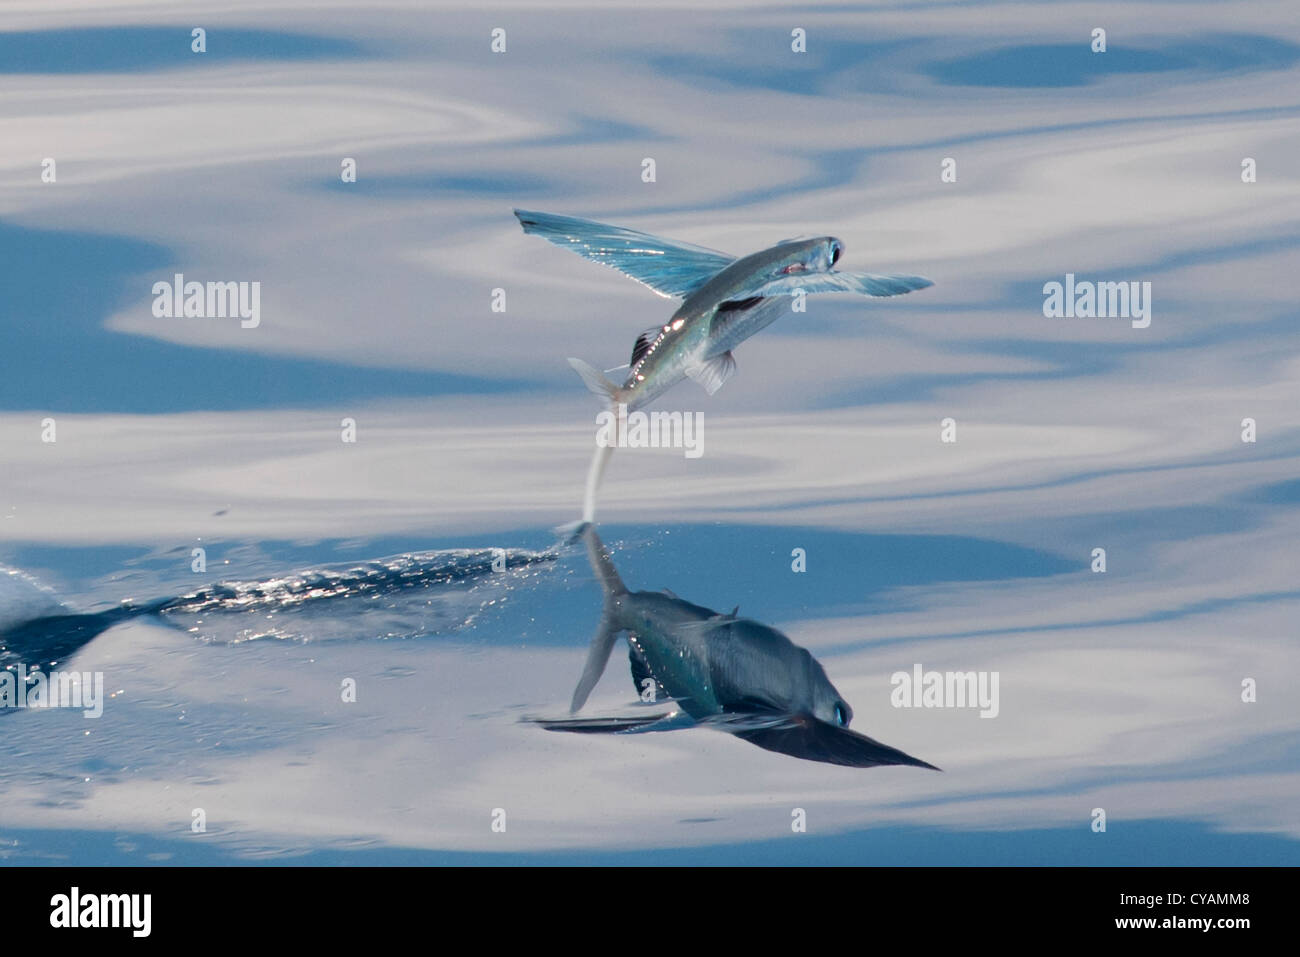 Flying Fish Species (scientific name unknown) with reflection visible, taking off and leaving a trail on the water. Stock Photo